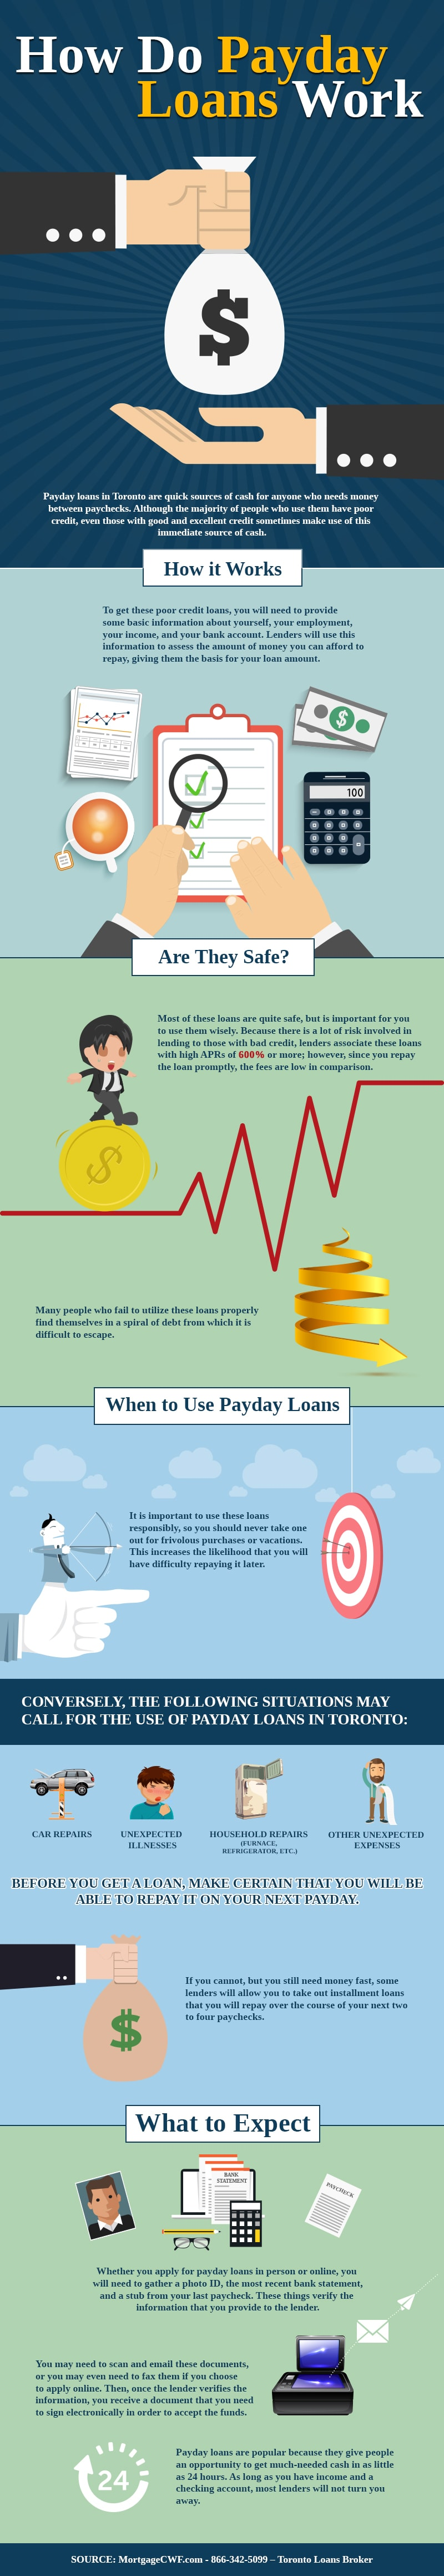 How Do Payday Loans Work - Infographic